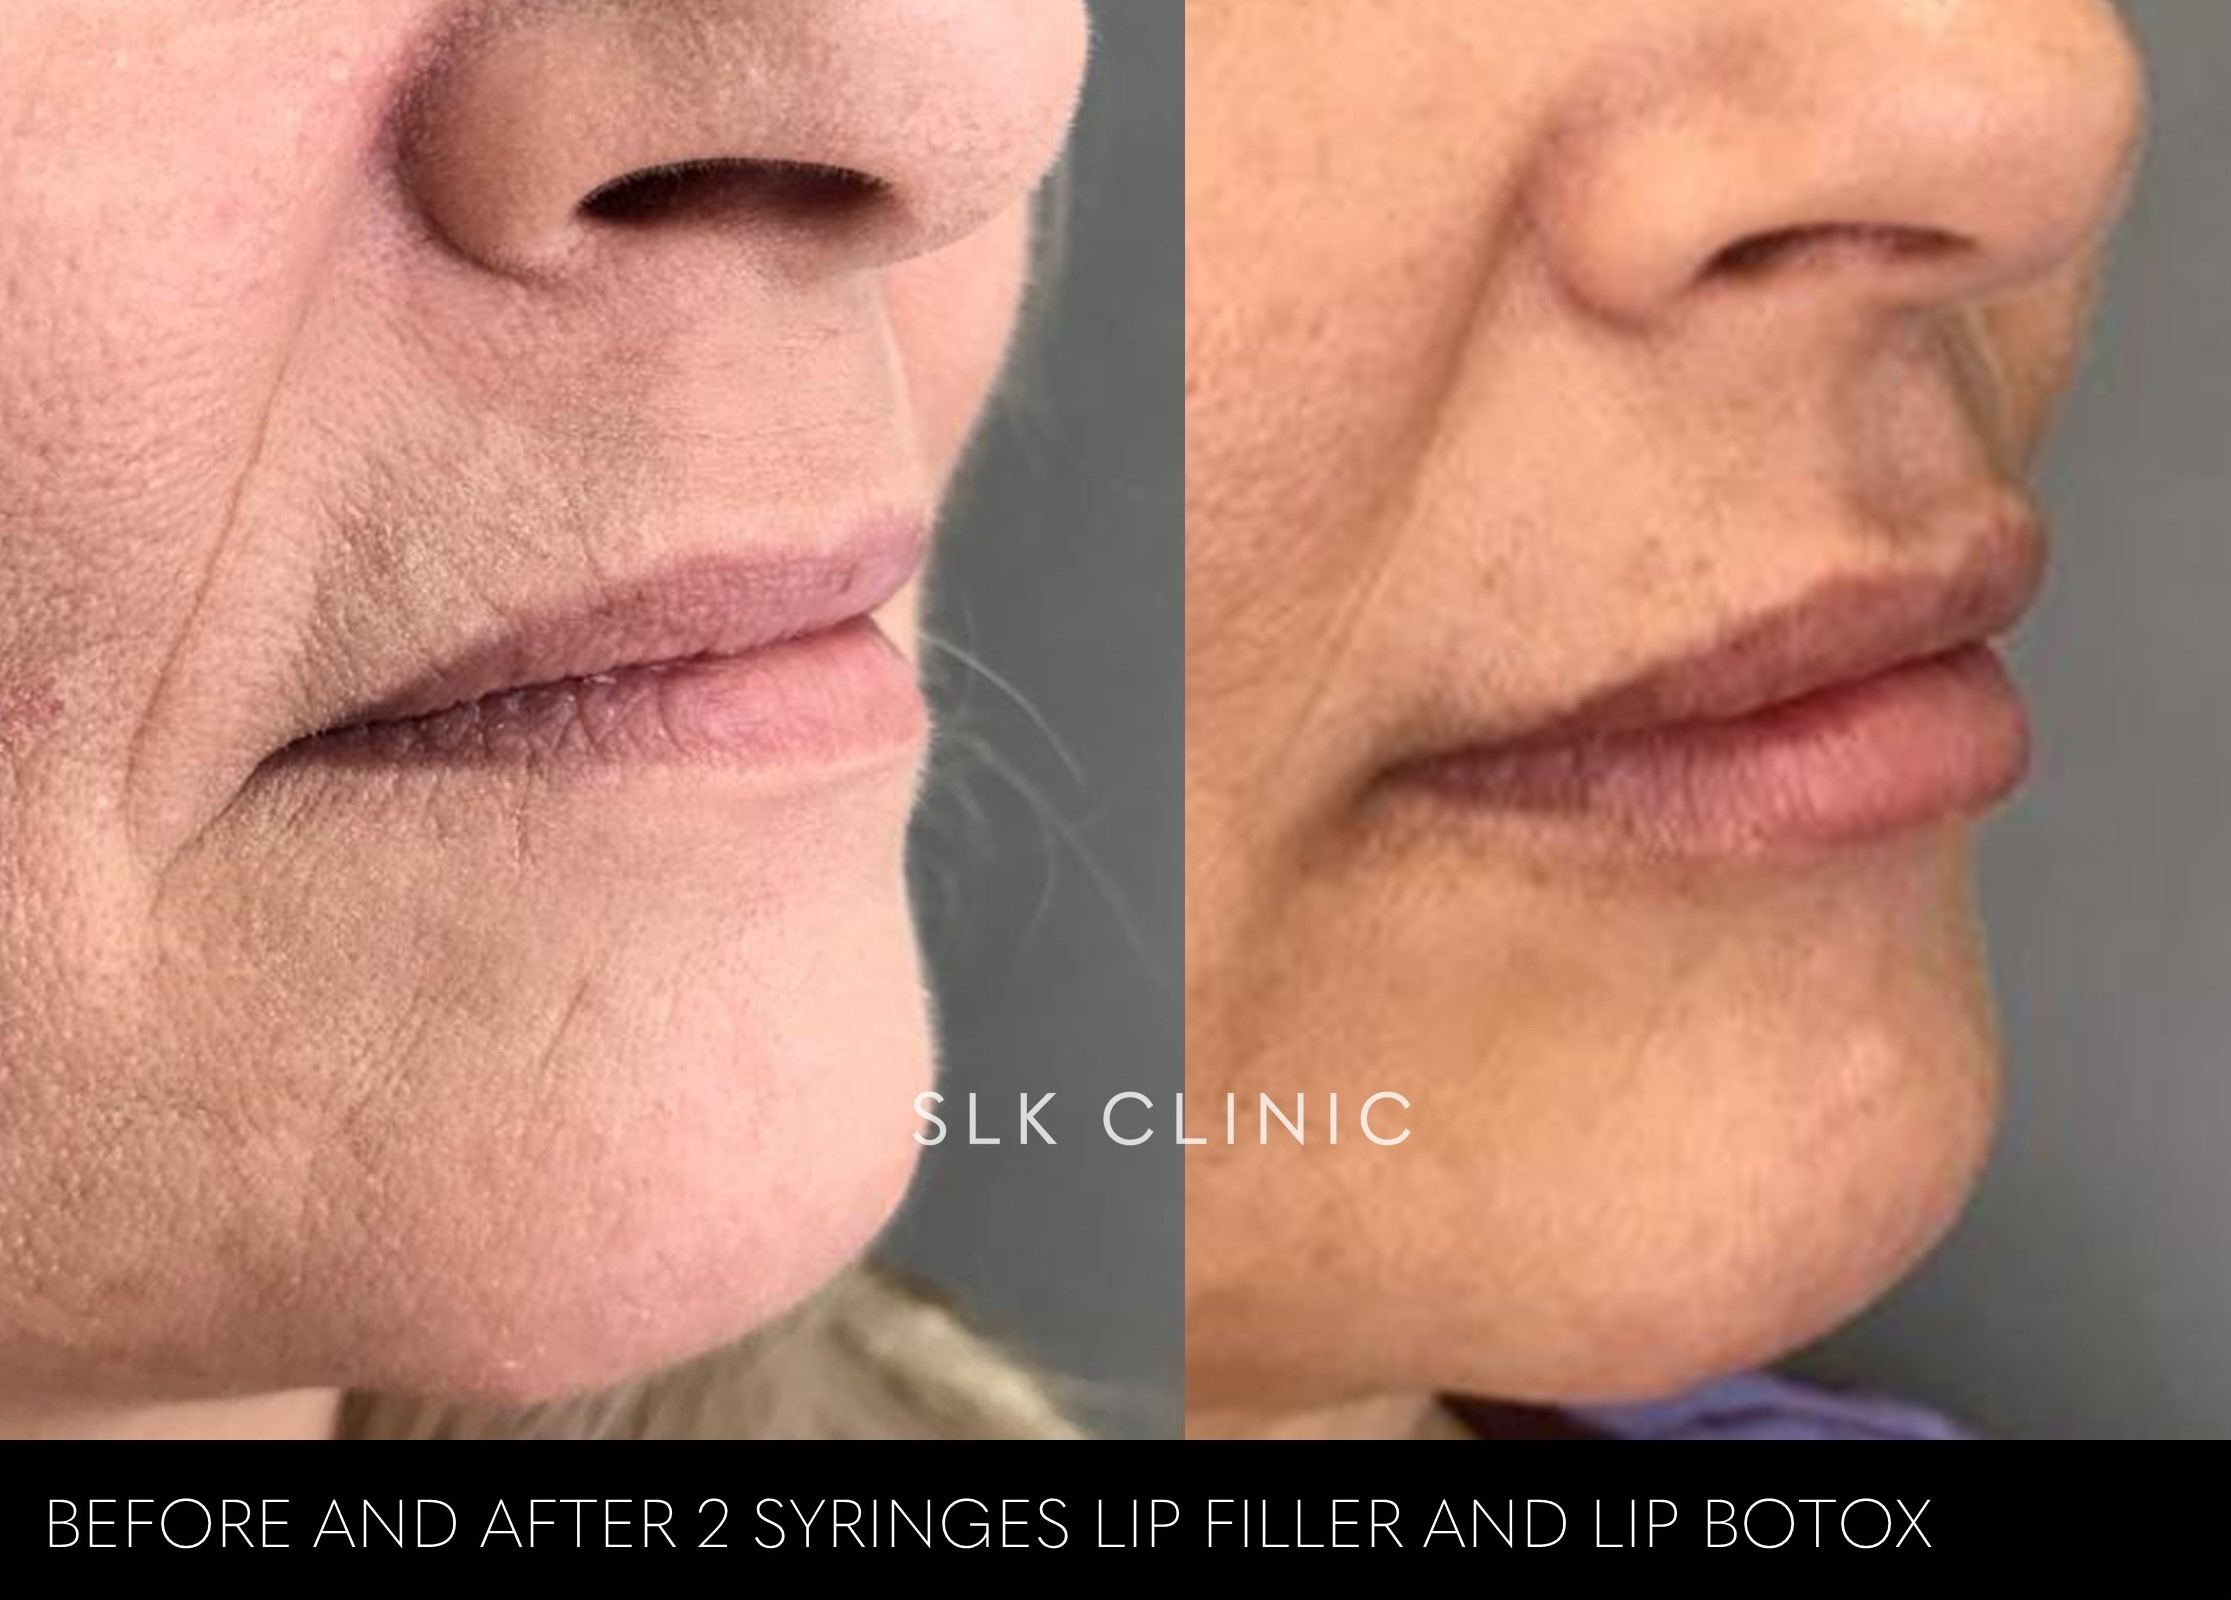 before and after 2 syringes lip filler and lip botox